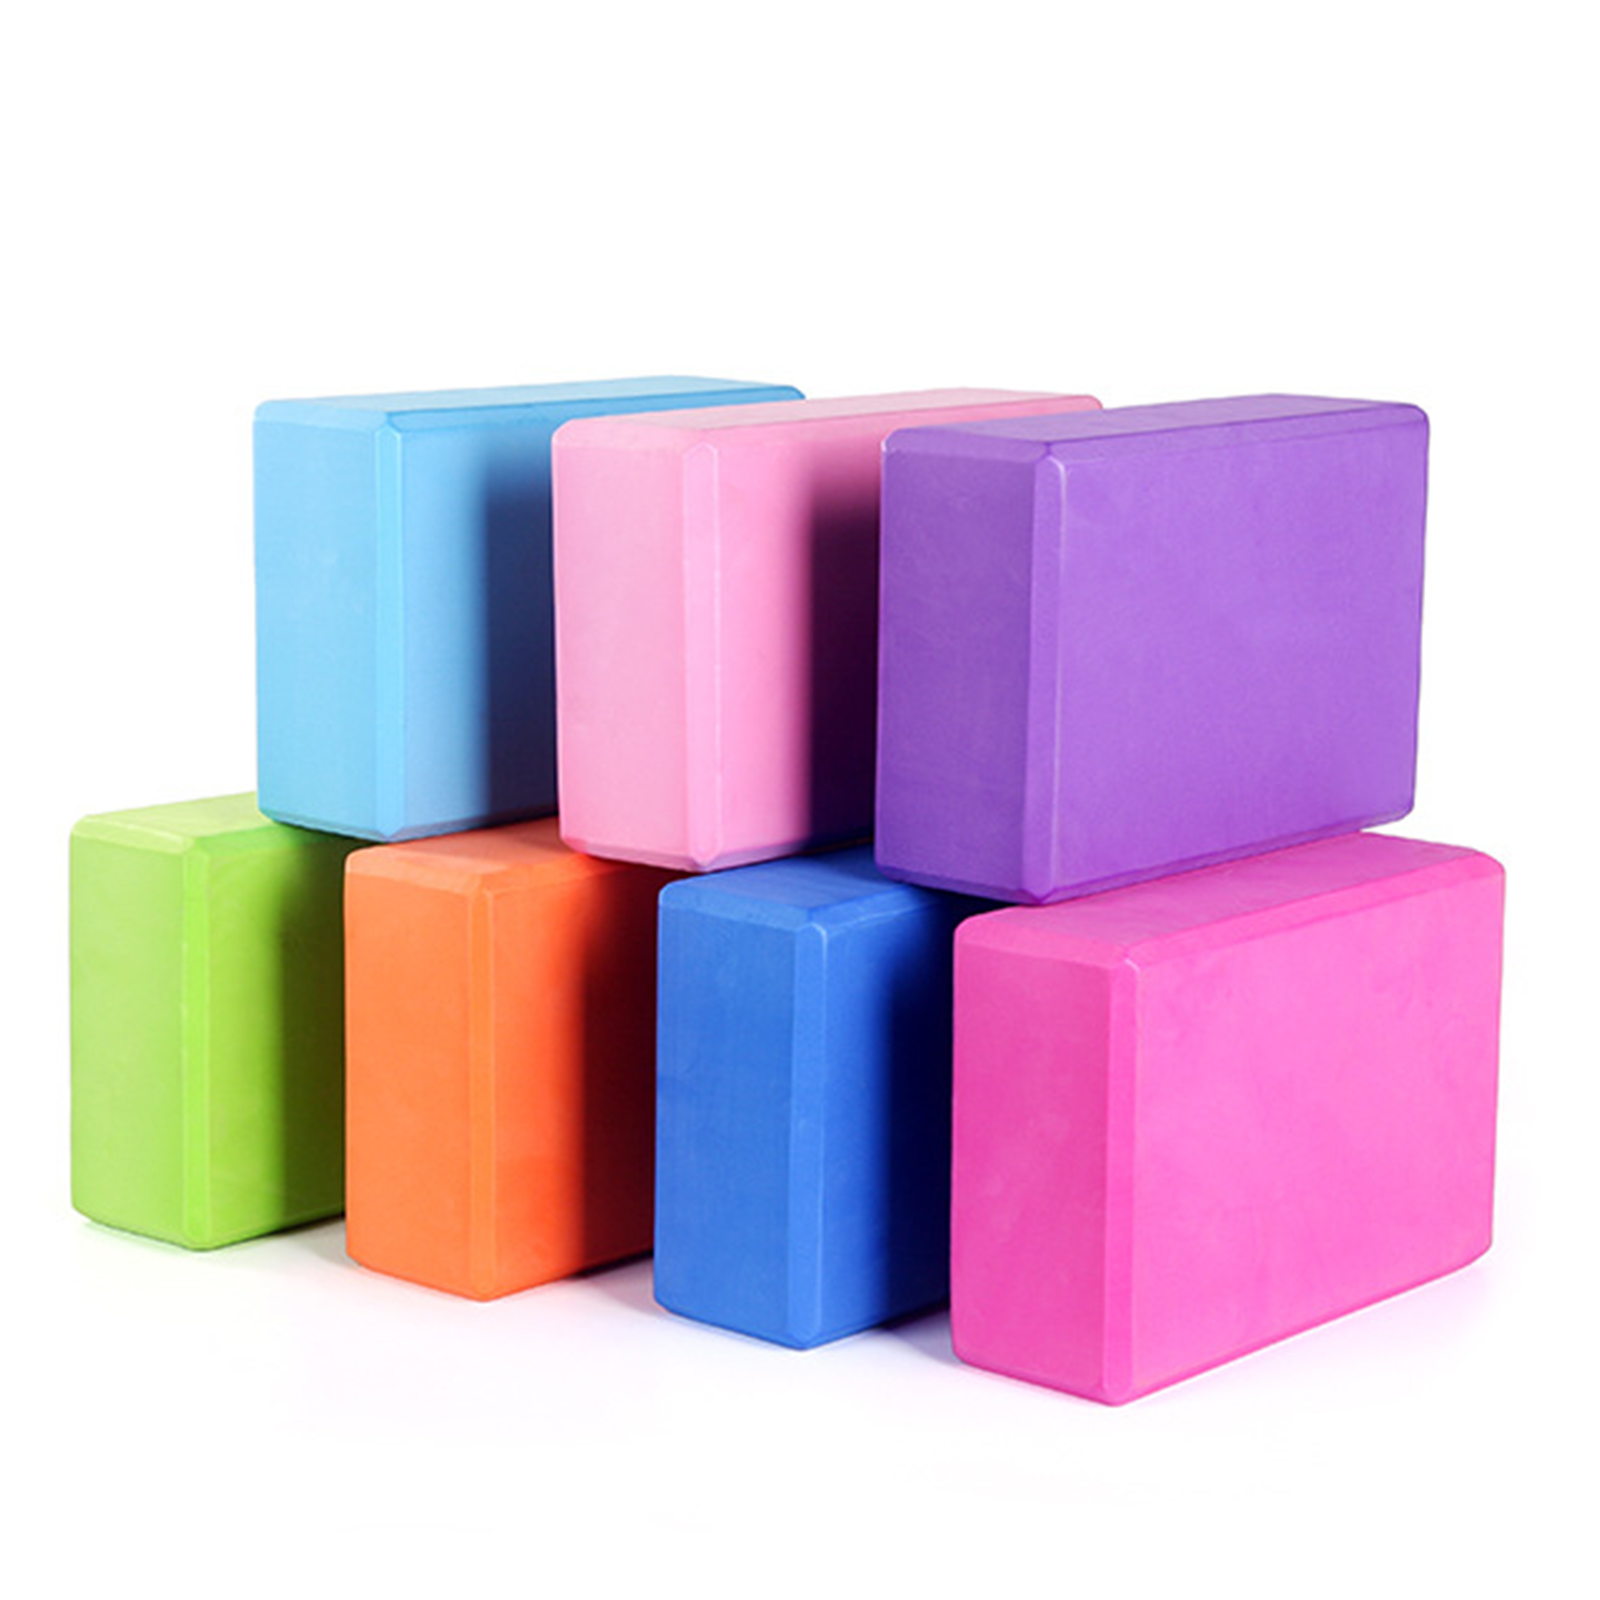 EVA Yoga Block Brick 7 Colors Home Yoga Props Foam Brick Gym Workout Sports Stretching Aid Body Shaping Fitness Sport